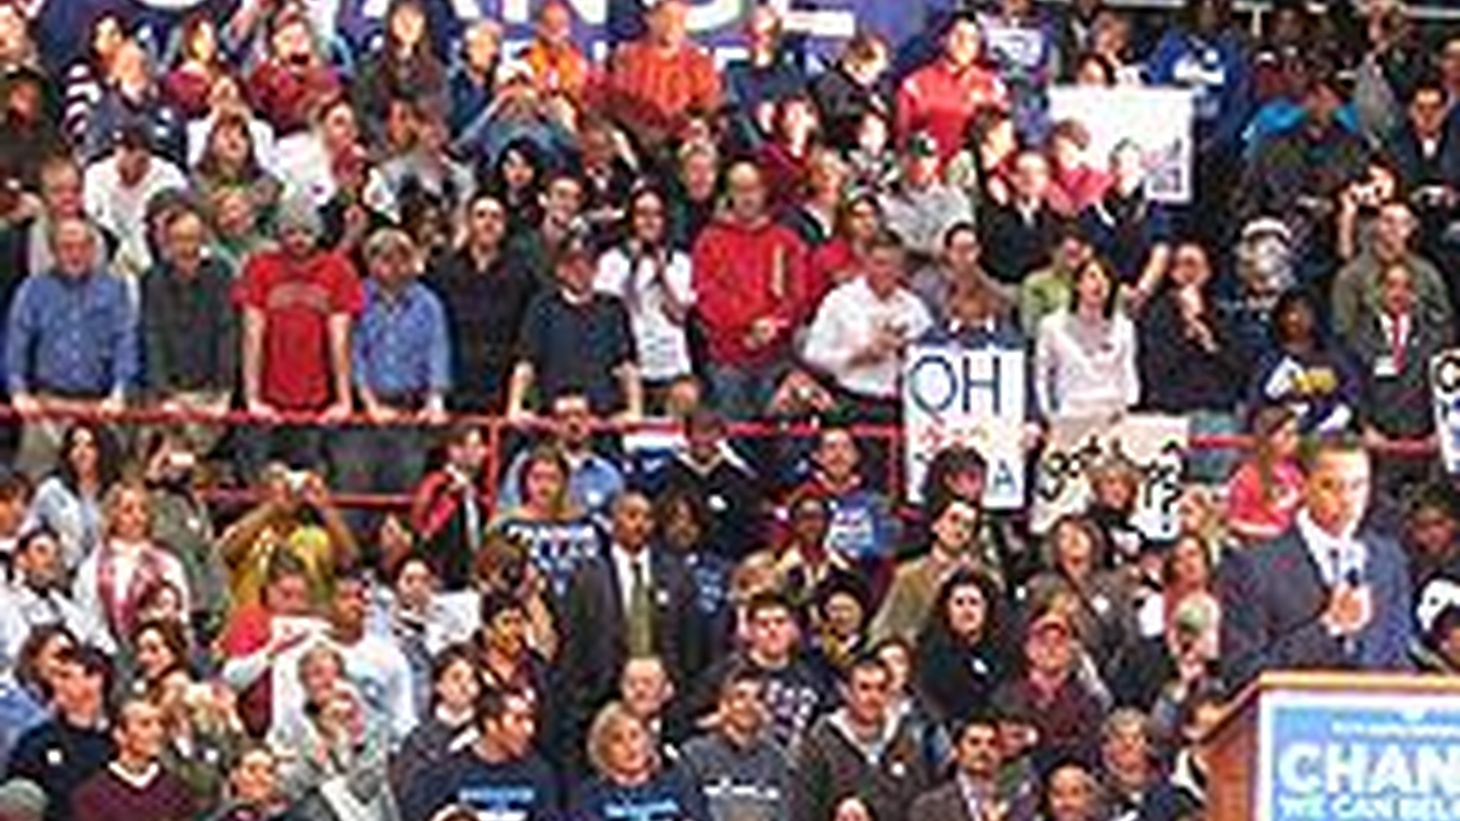 Barack Obama broke barriers and made history earlier this week when